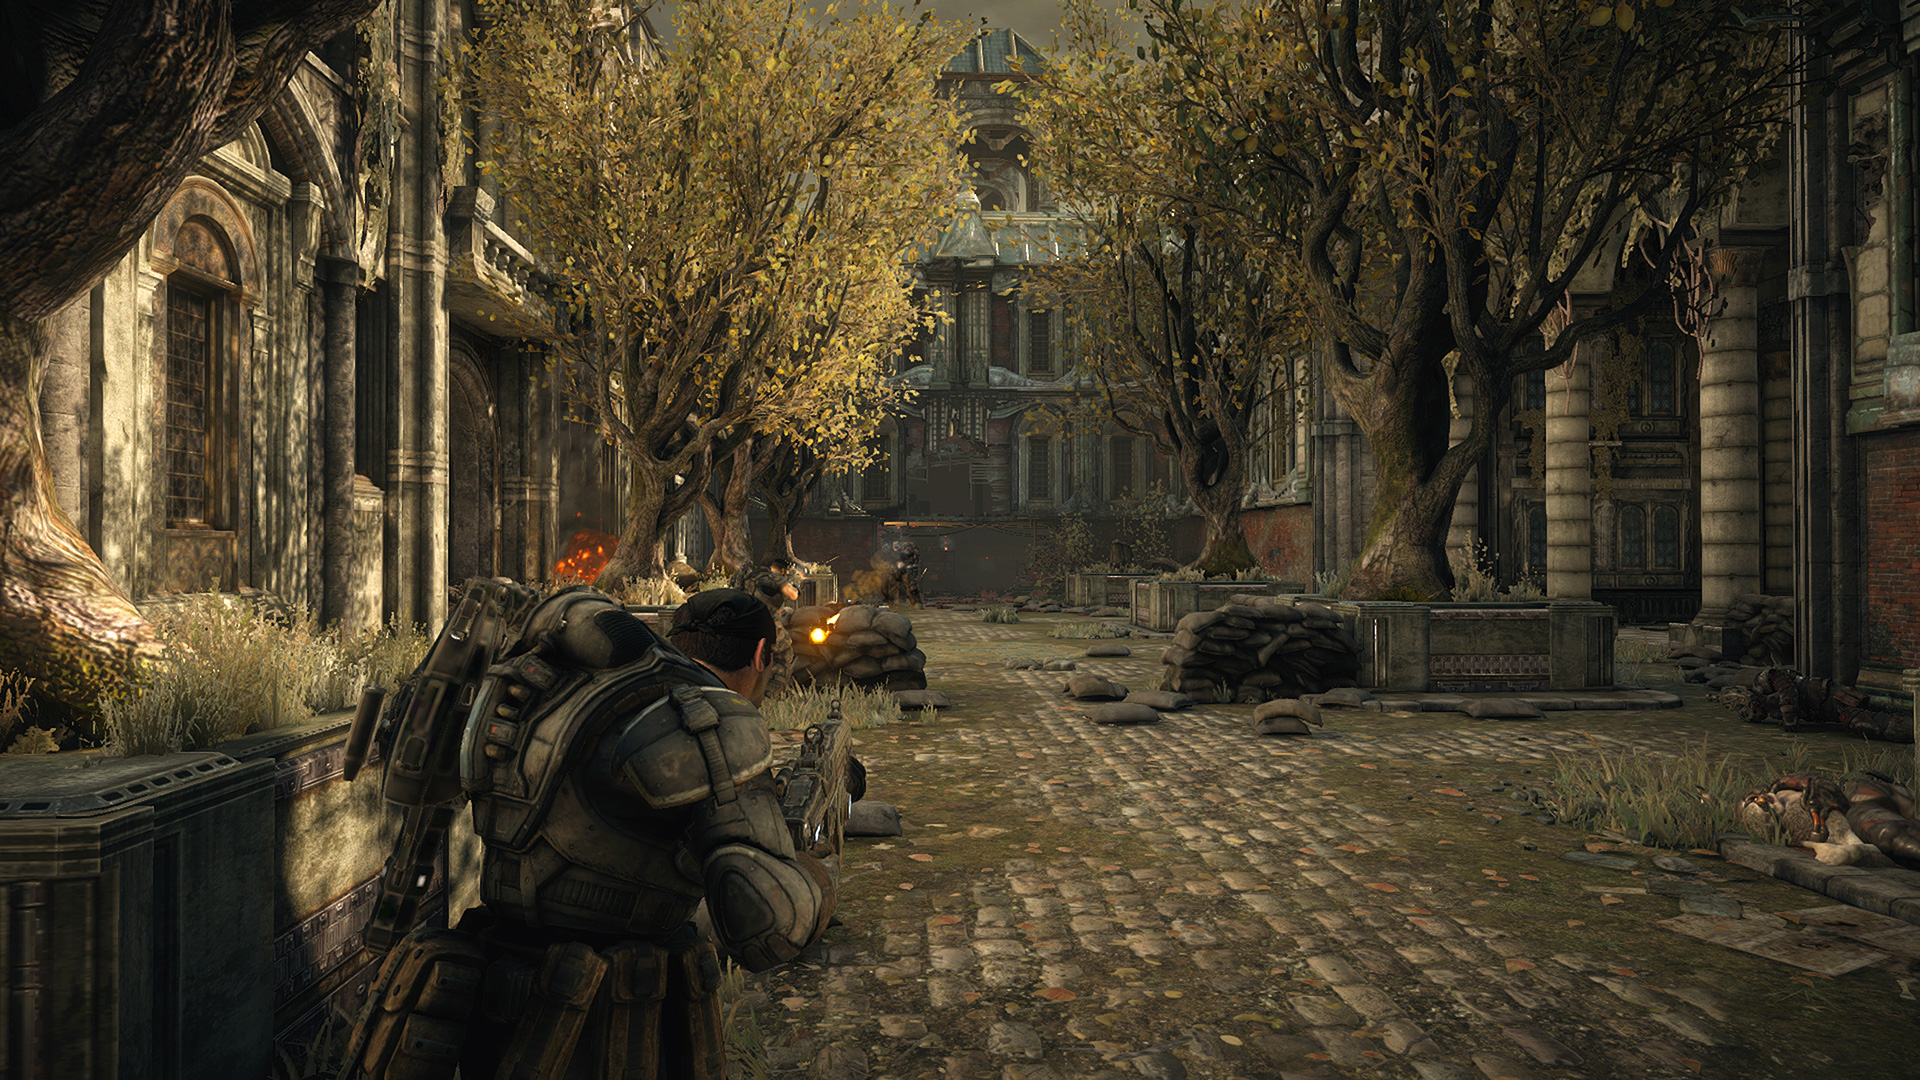 Gears of War Xbox One Beta: 5 Things to Know